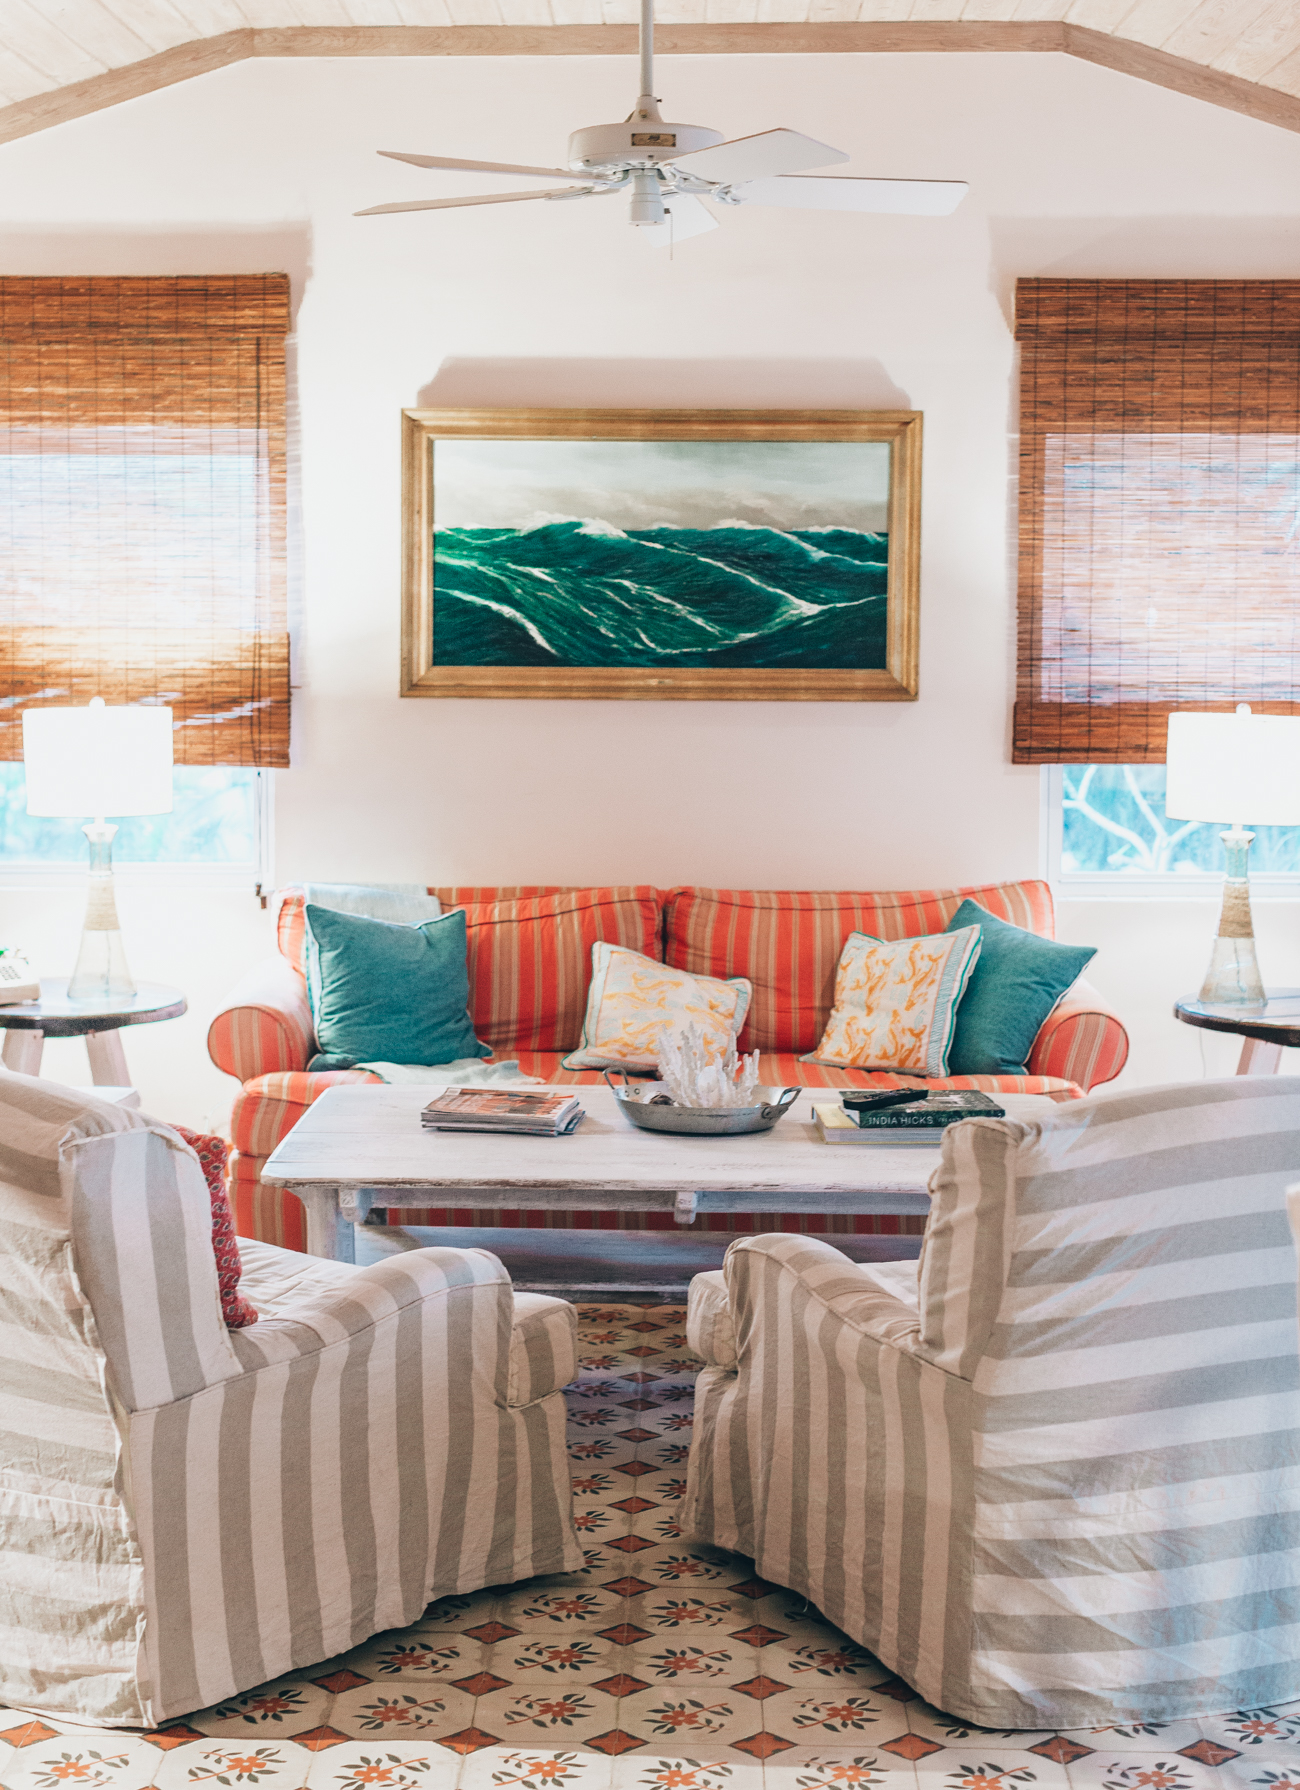 Touchstone Properties Harbour Island VRBO AIRBNB House Photos Harbour Island Vacation Rental Home-18